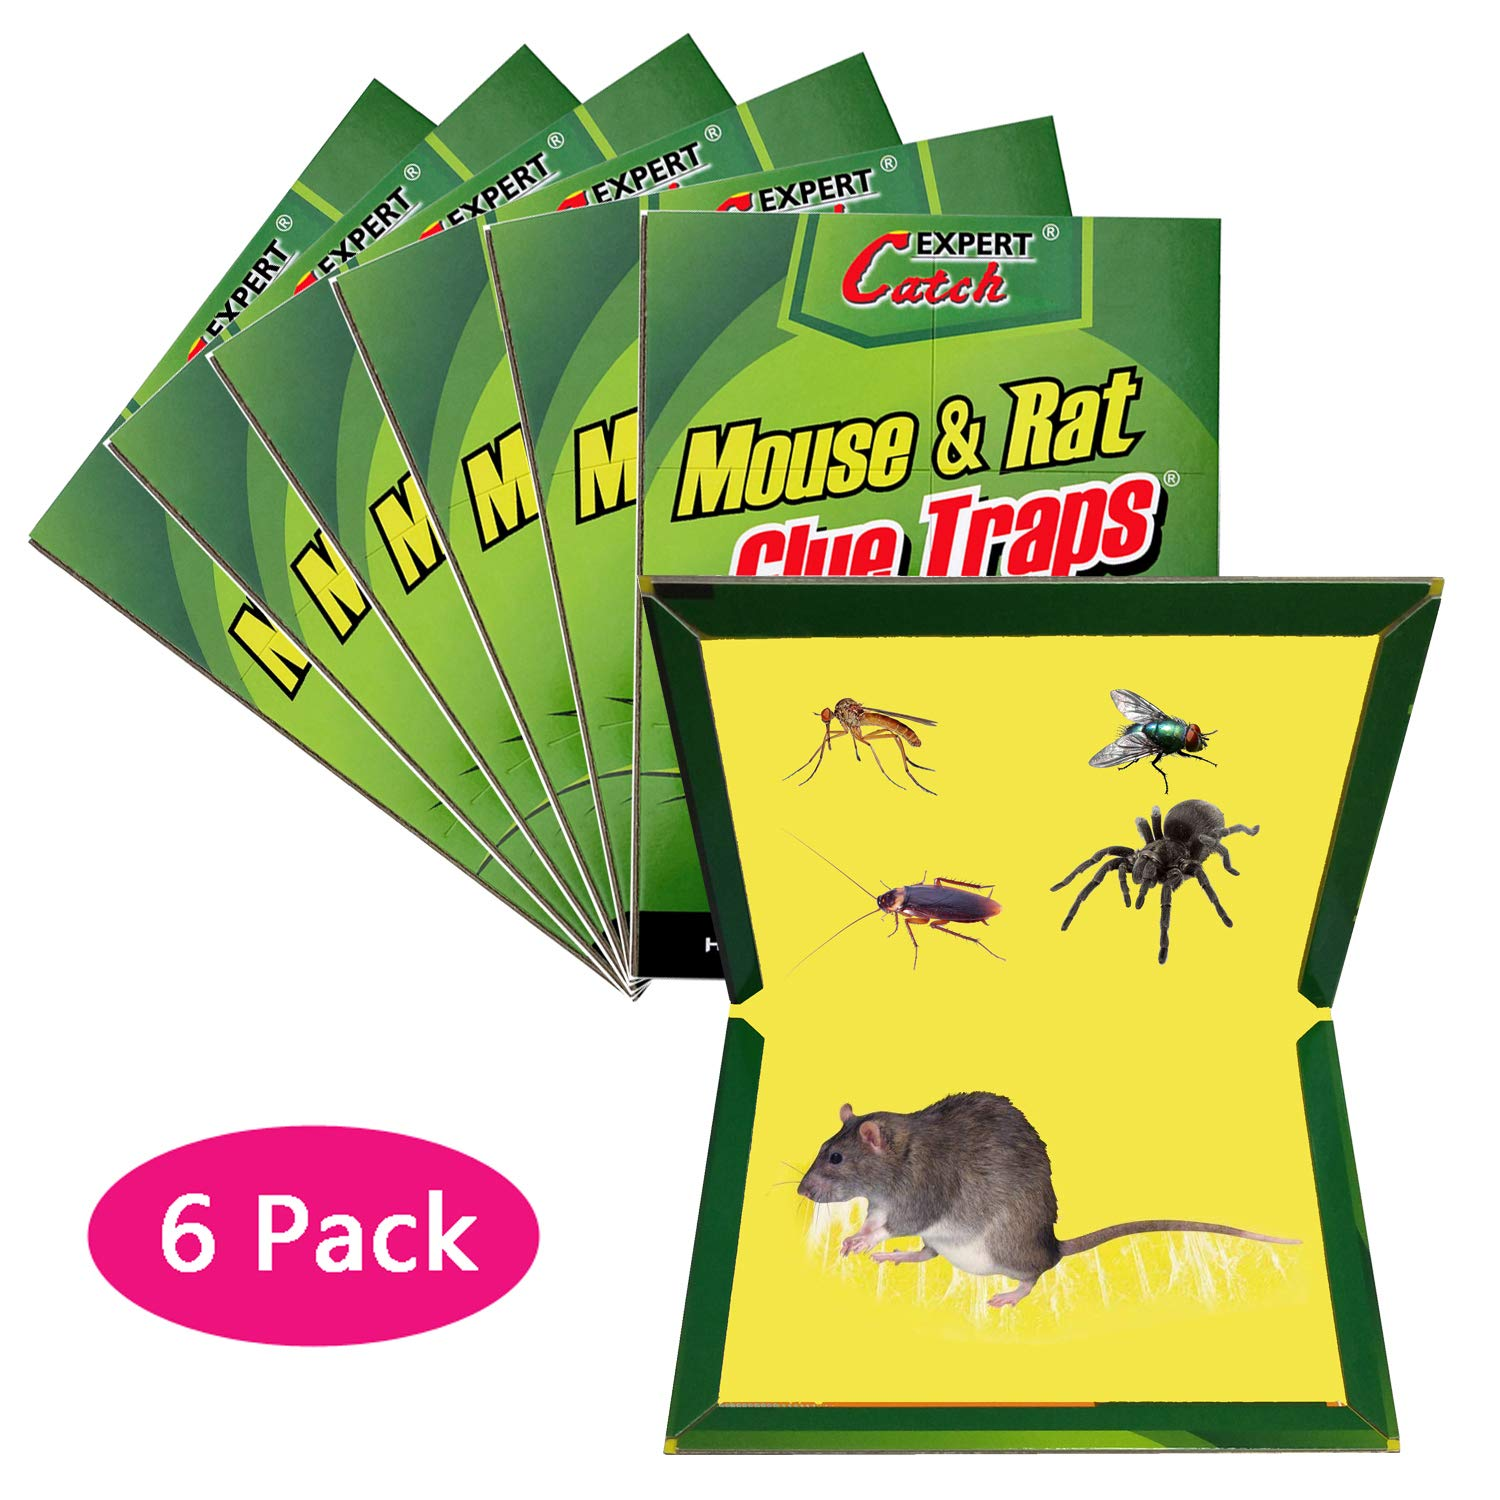 WAIWAI Mouse Glue Trap, 6 Pack Mouse Rat Glue Traps, New Version Strongly Adhesive, Mouse Traps Glue Boards for Mice Cockroach Ant Spider by WAIWAI